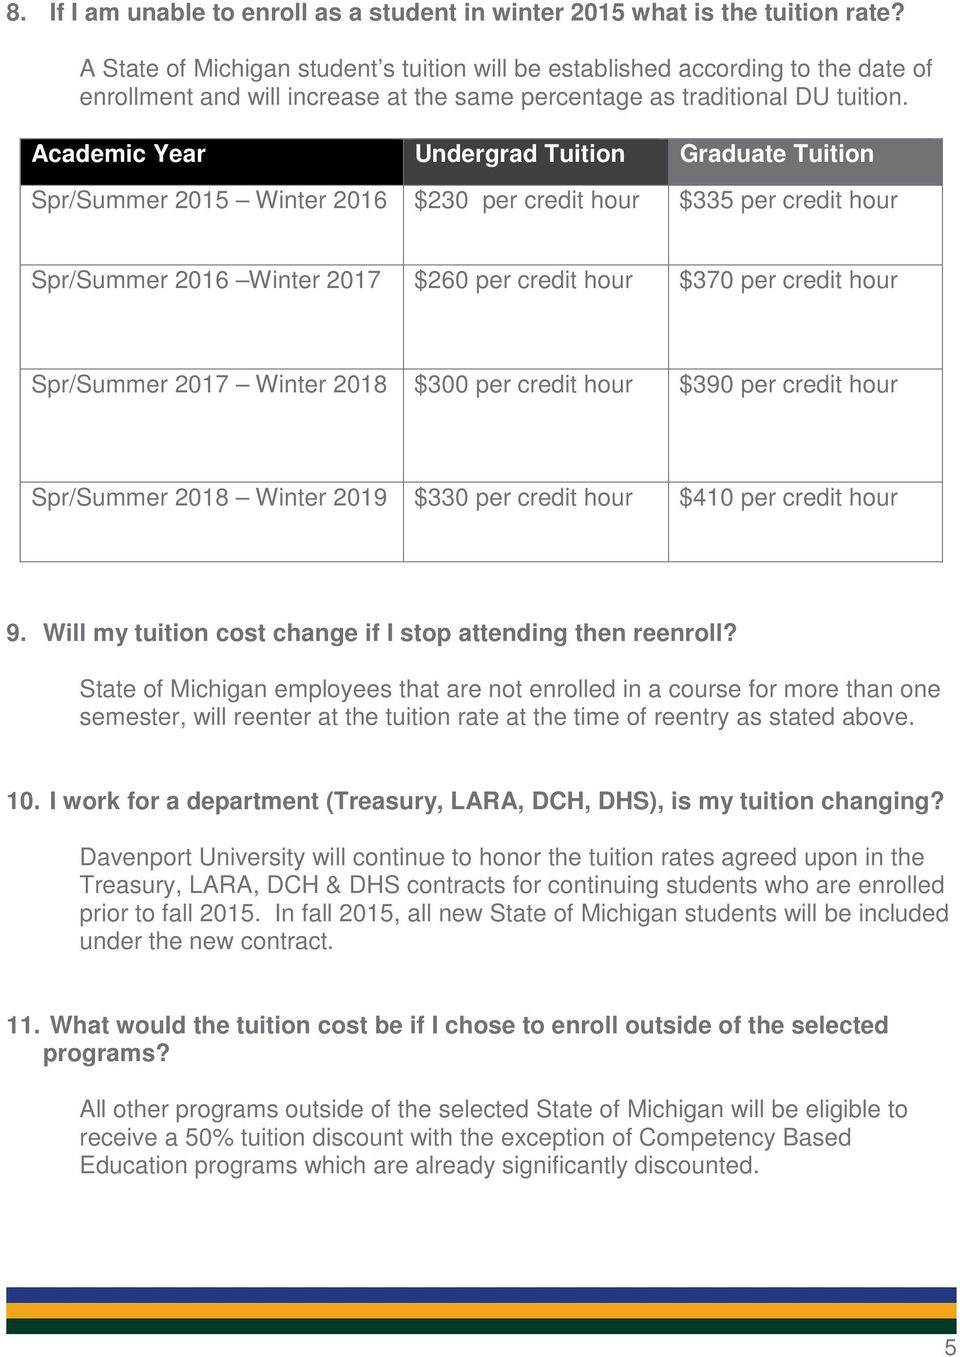 Academic Year Undergrad Tuition Graduate Tuition Spr/Summer 2015 Winter 2016 $230 per credit hour $335 per credit hour Spr/Summer 2016 Winter 2017 $260 per credit hour $370 per credit hour Spr/Summer